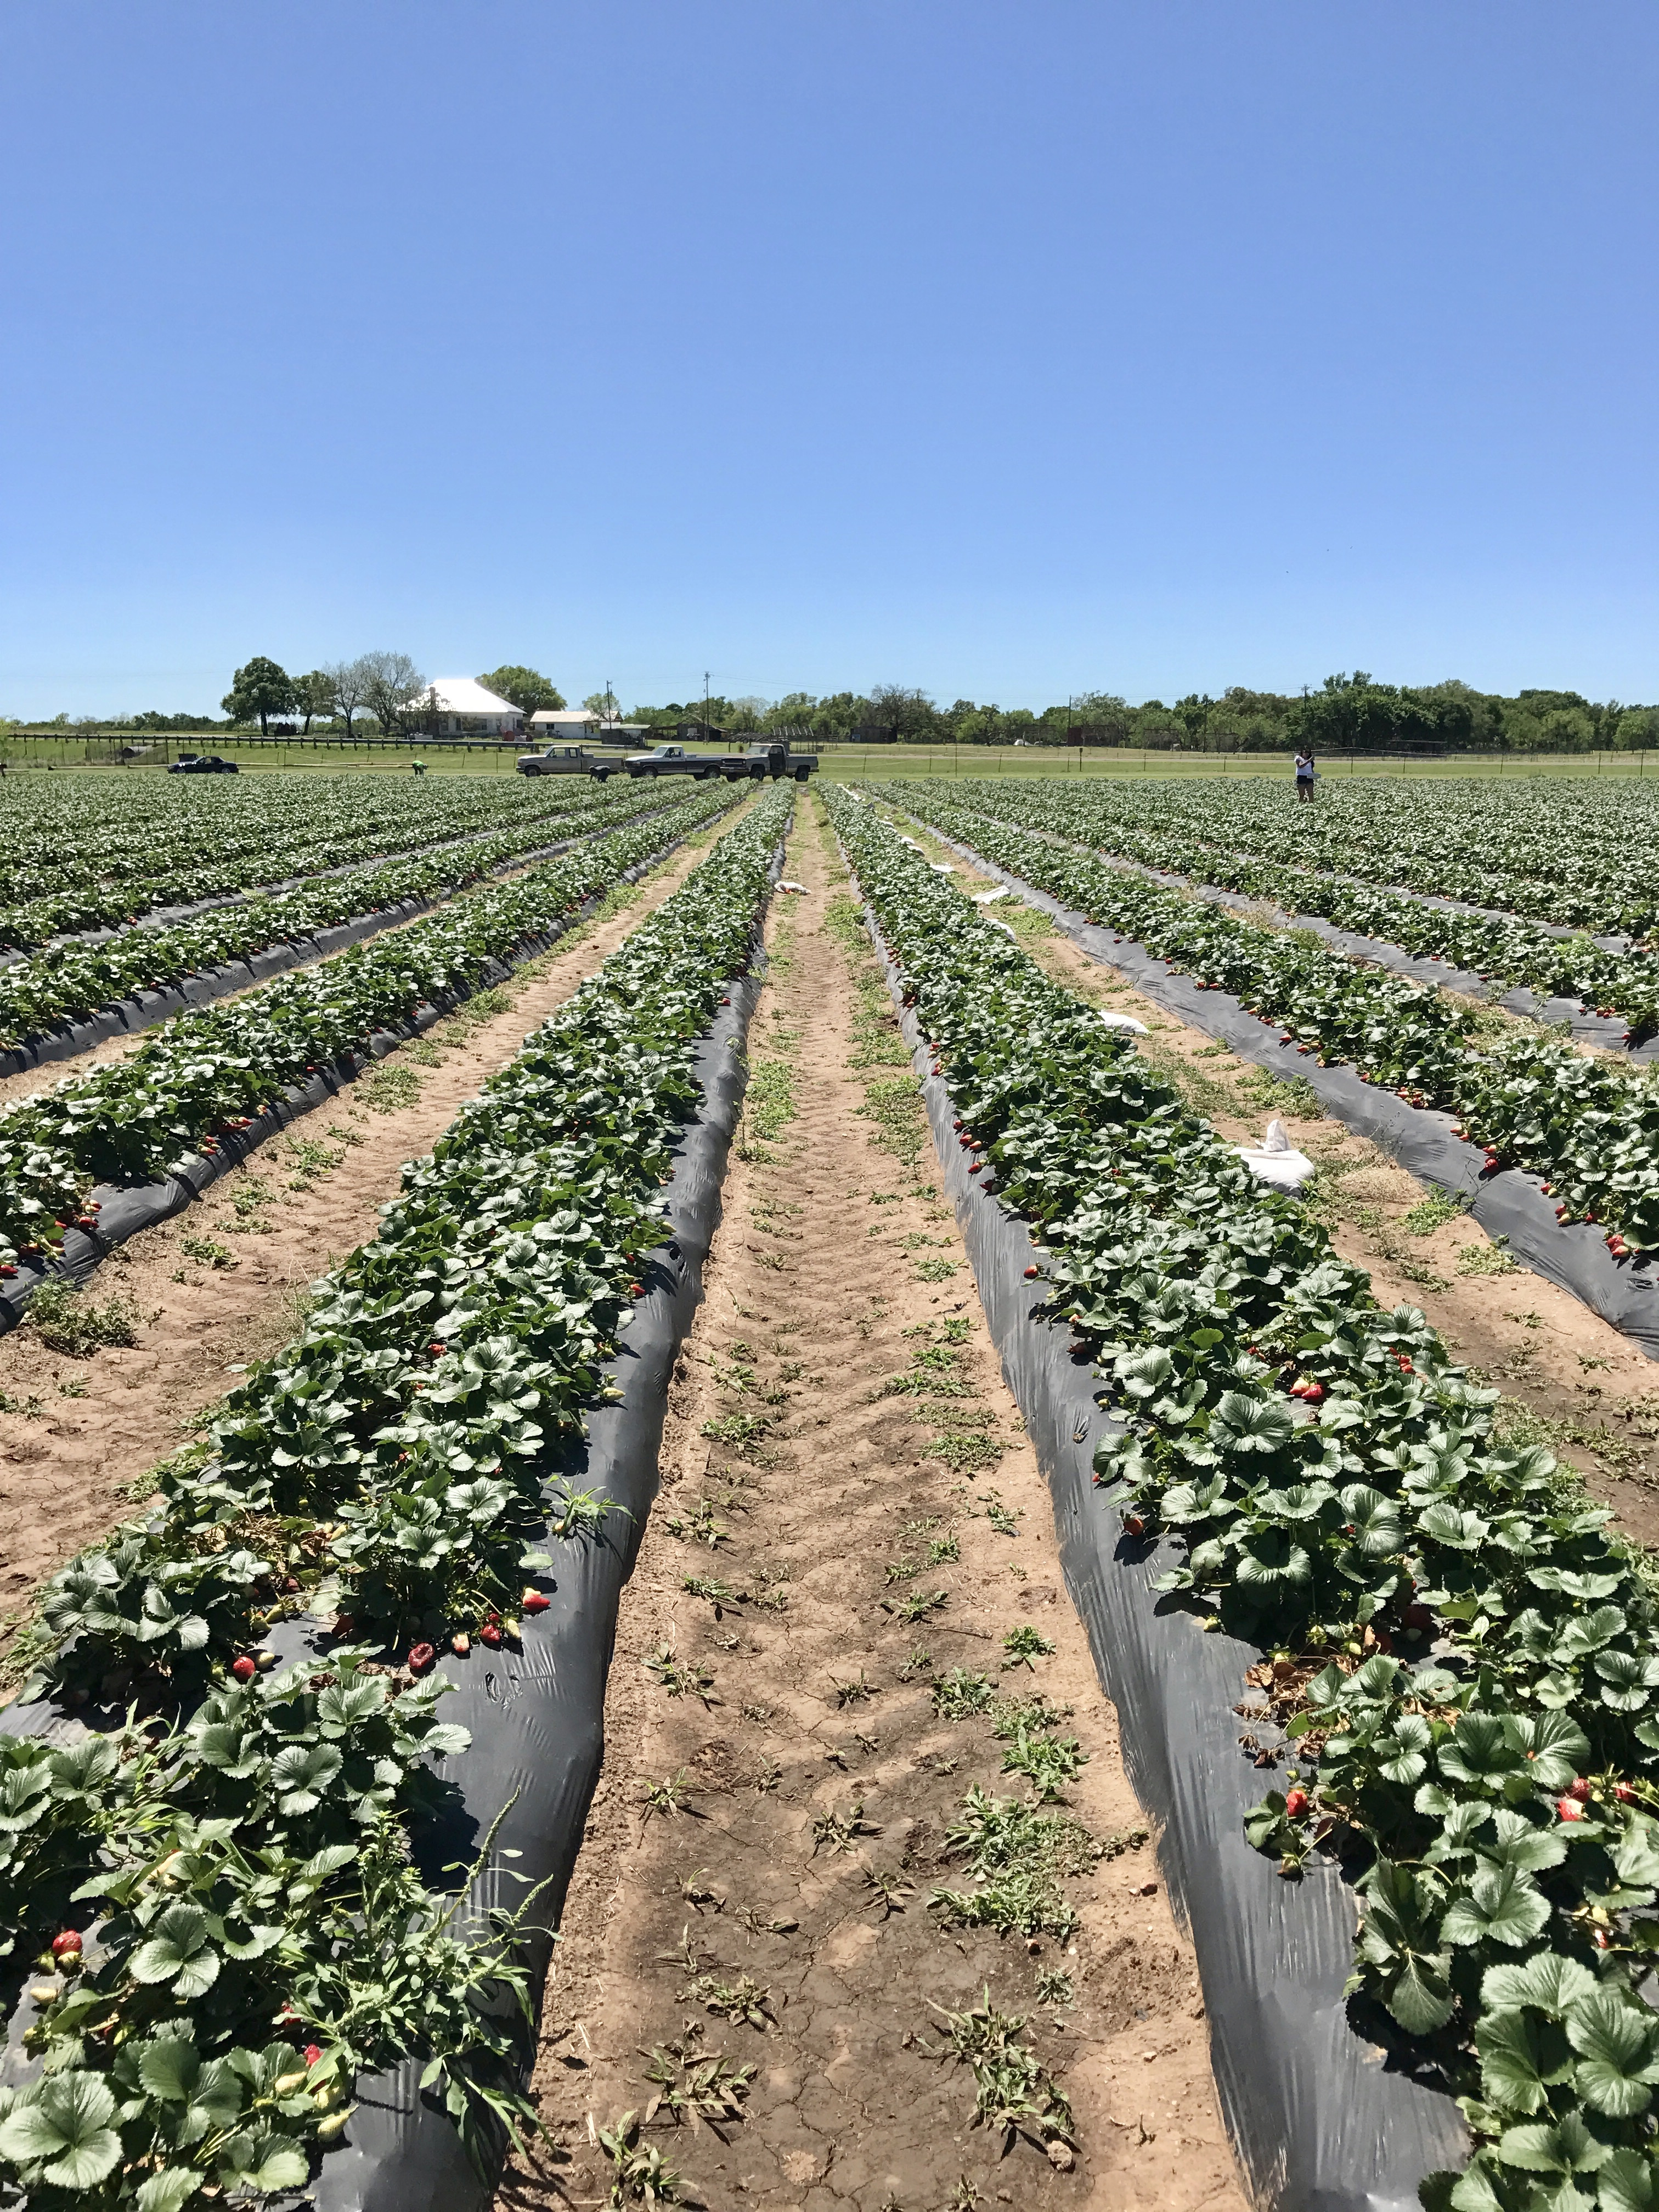 In the strawberry field